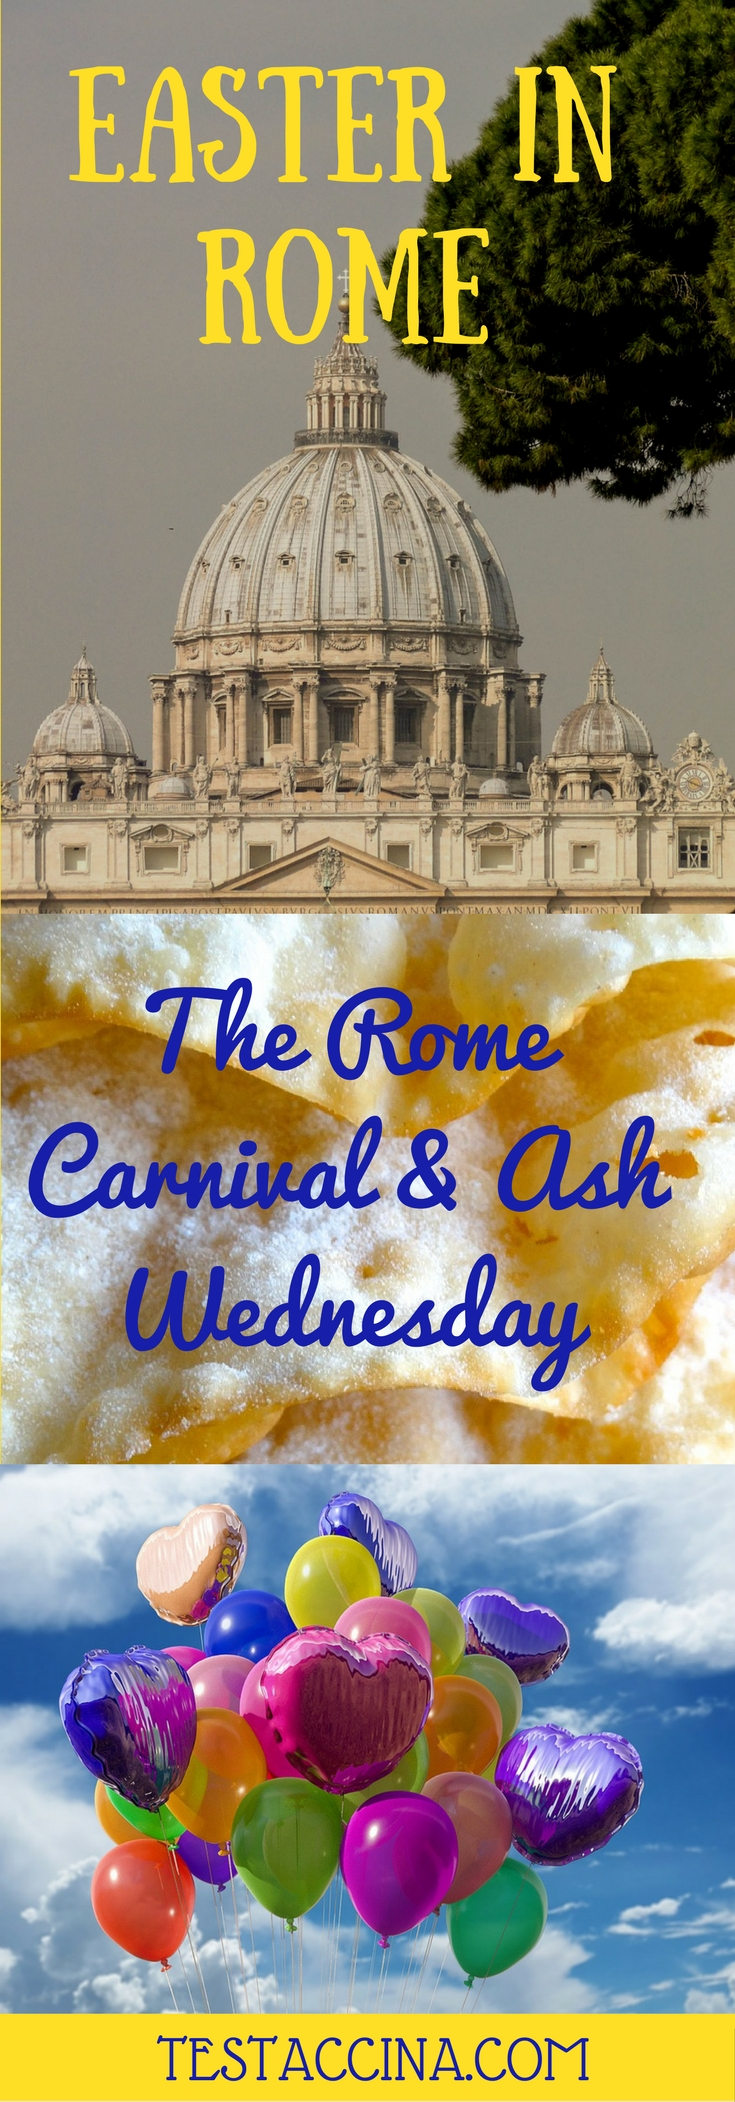 Easter in Rome is preceded by a cycle of popular and religious feasts, including the Rome Carnival and Ash Wednesday. Here's what to expect!